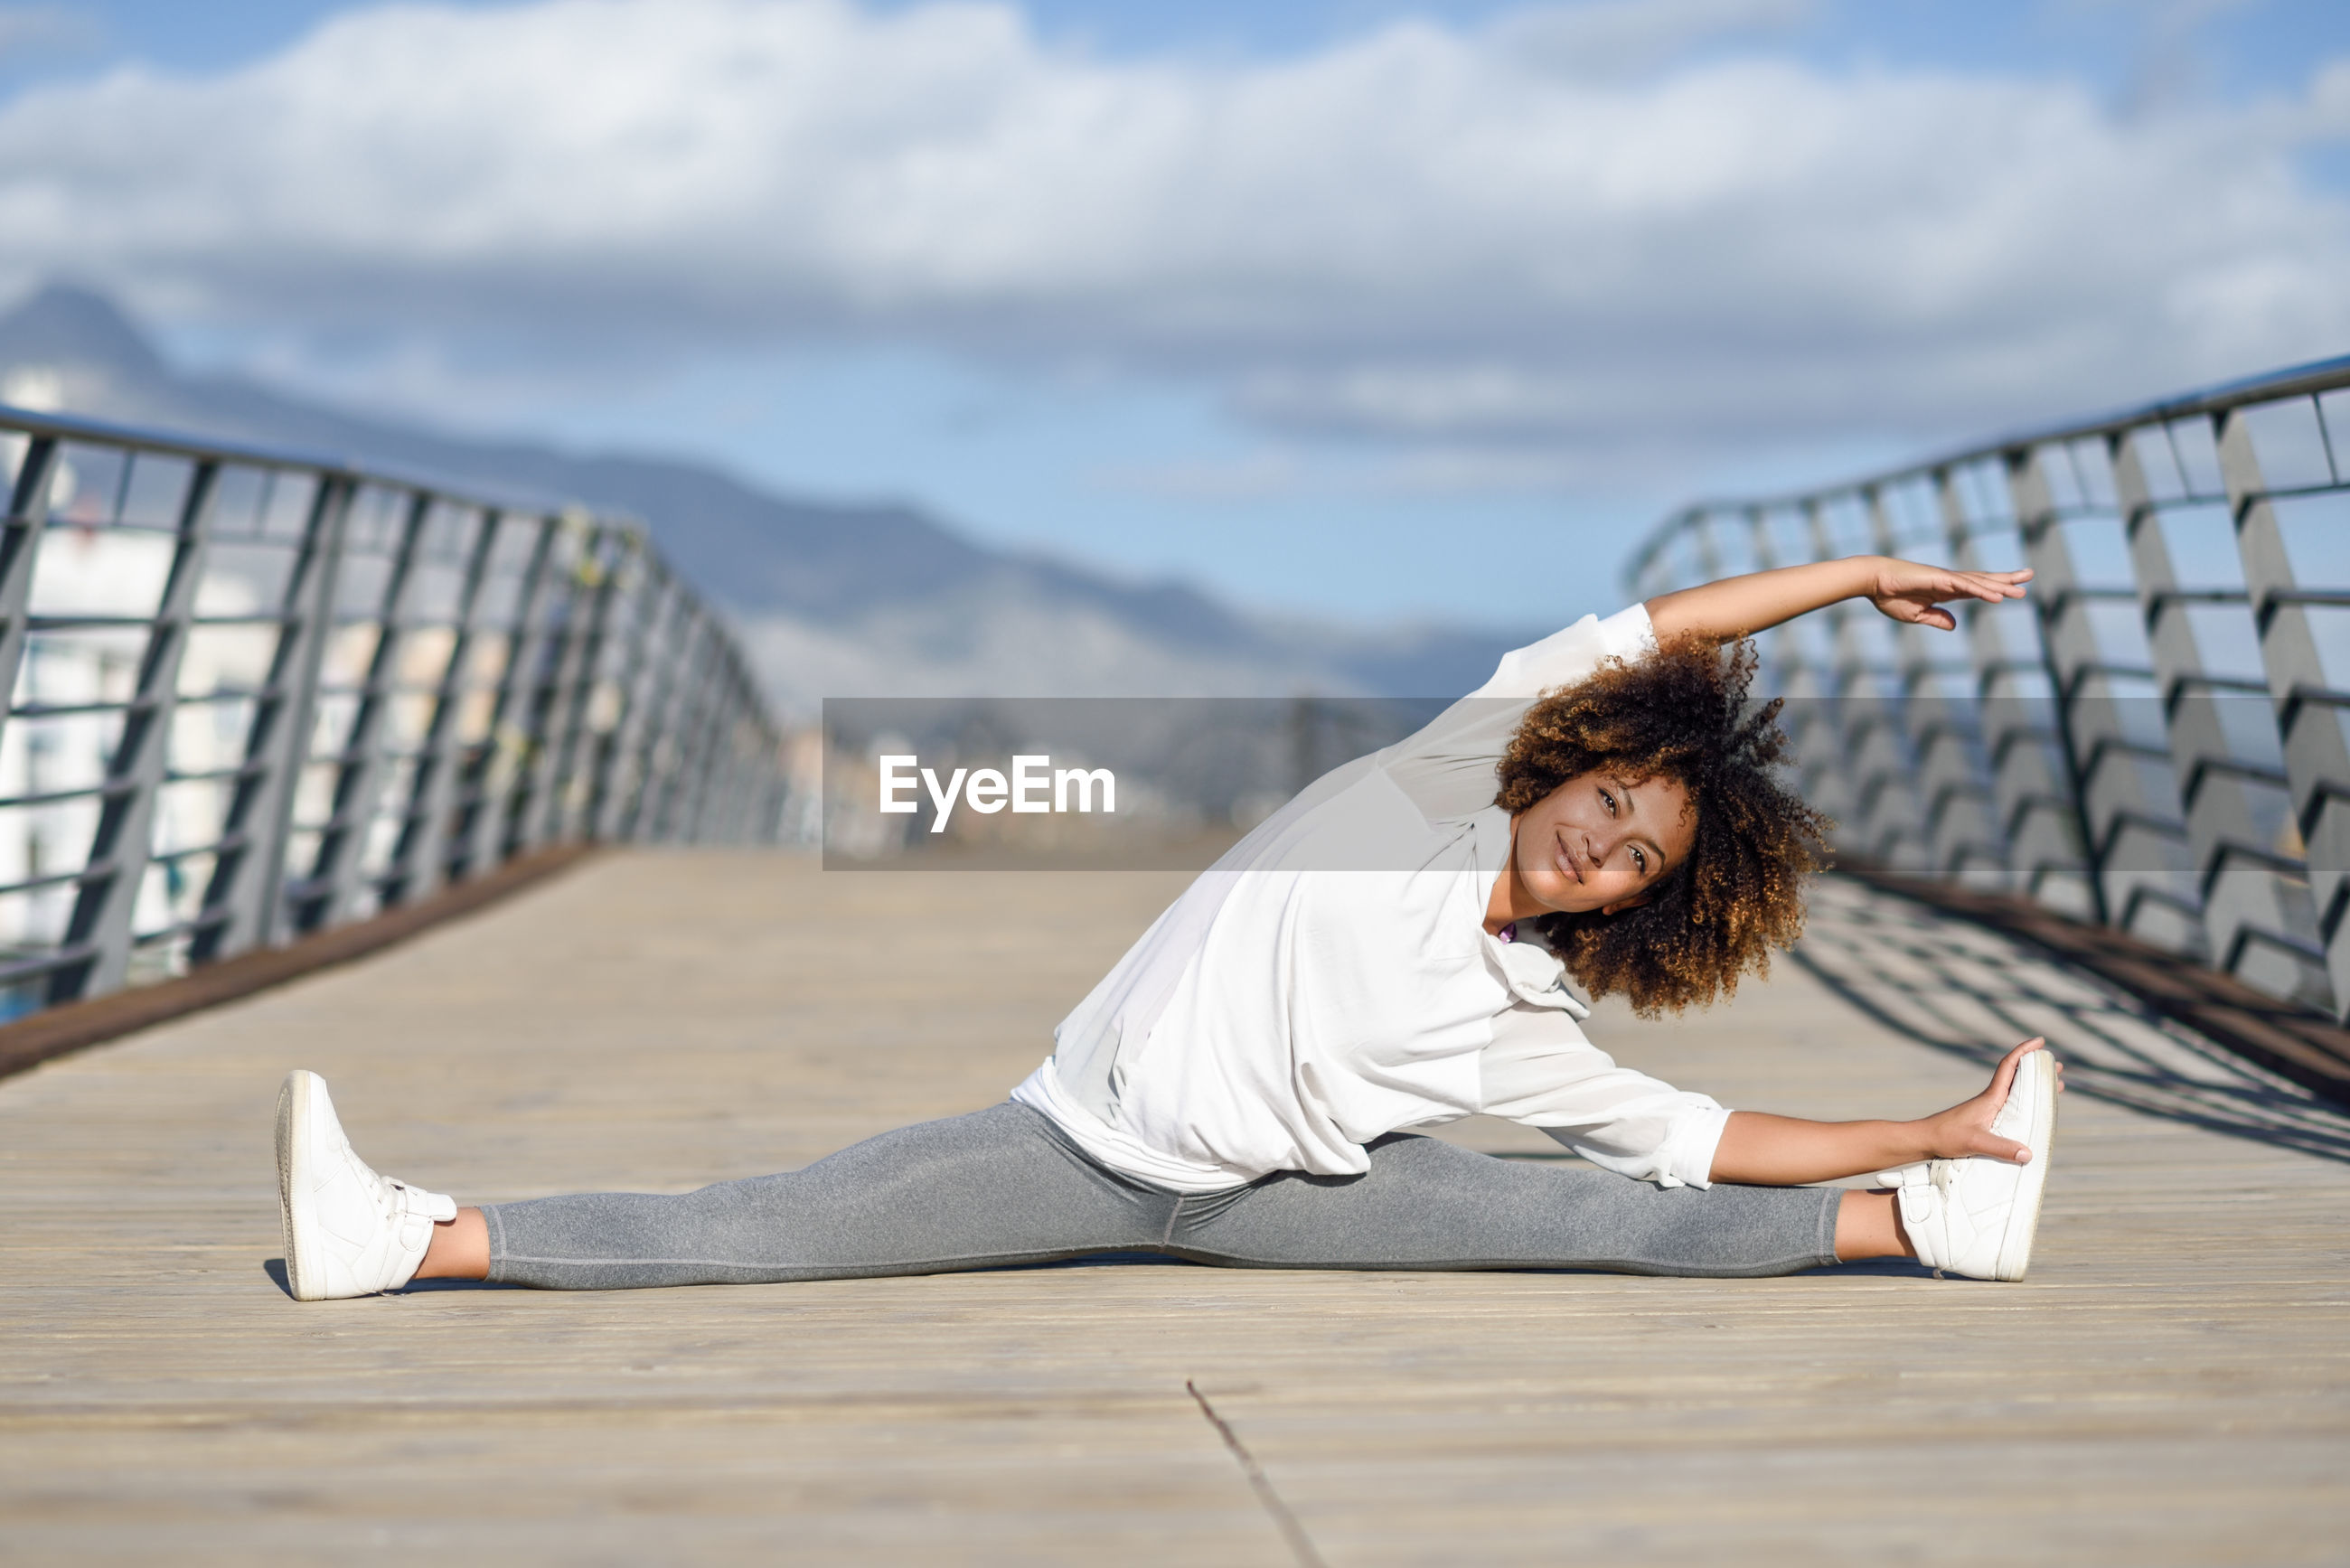 Full length of young woman exercising on bridge against sky